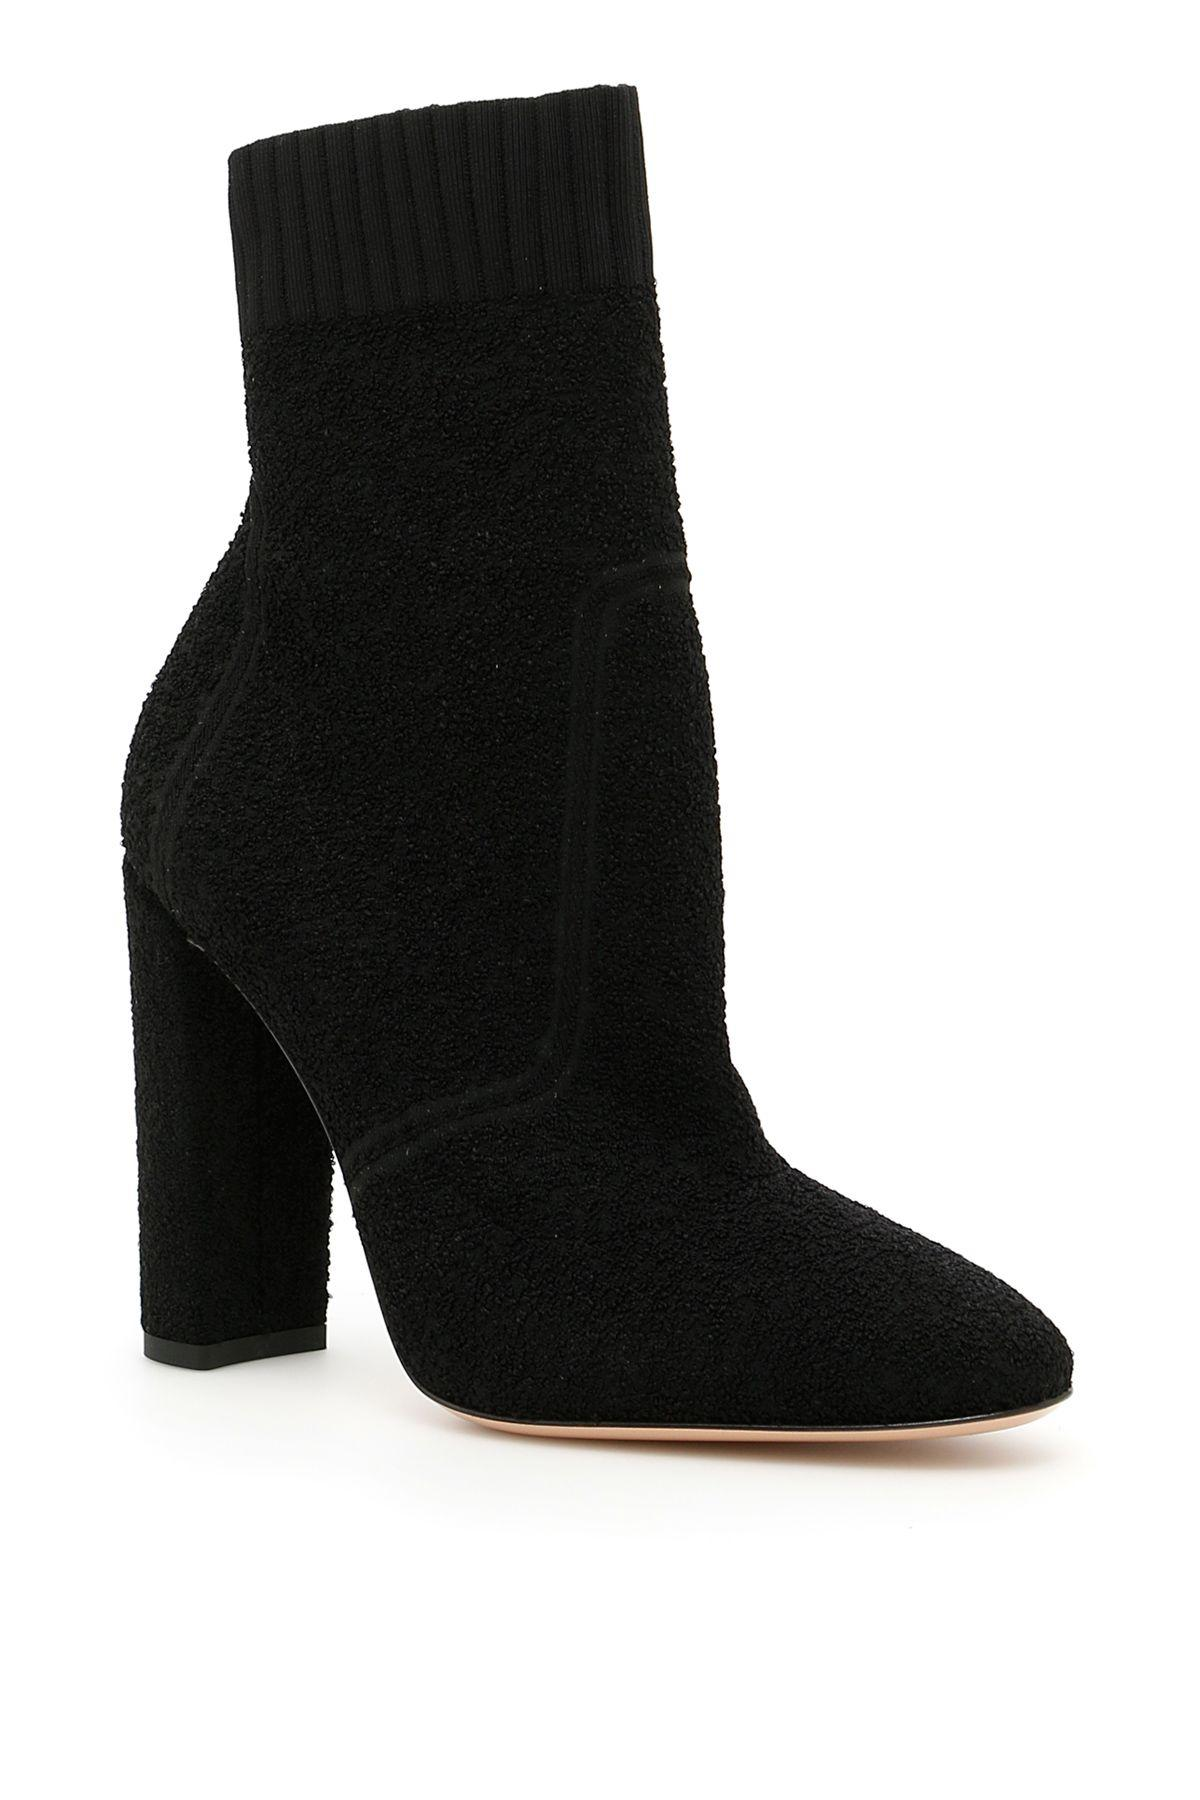 Gianvito Rossi Isa BouclÉ Booties In Blacknero